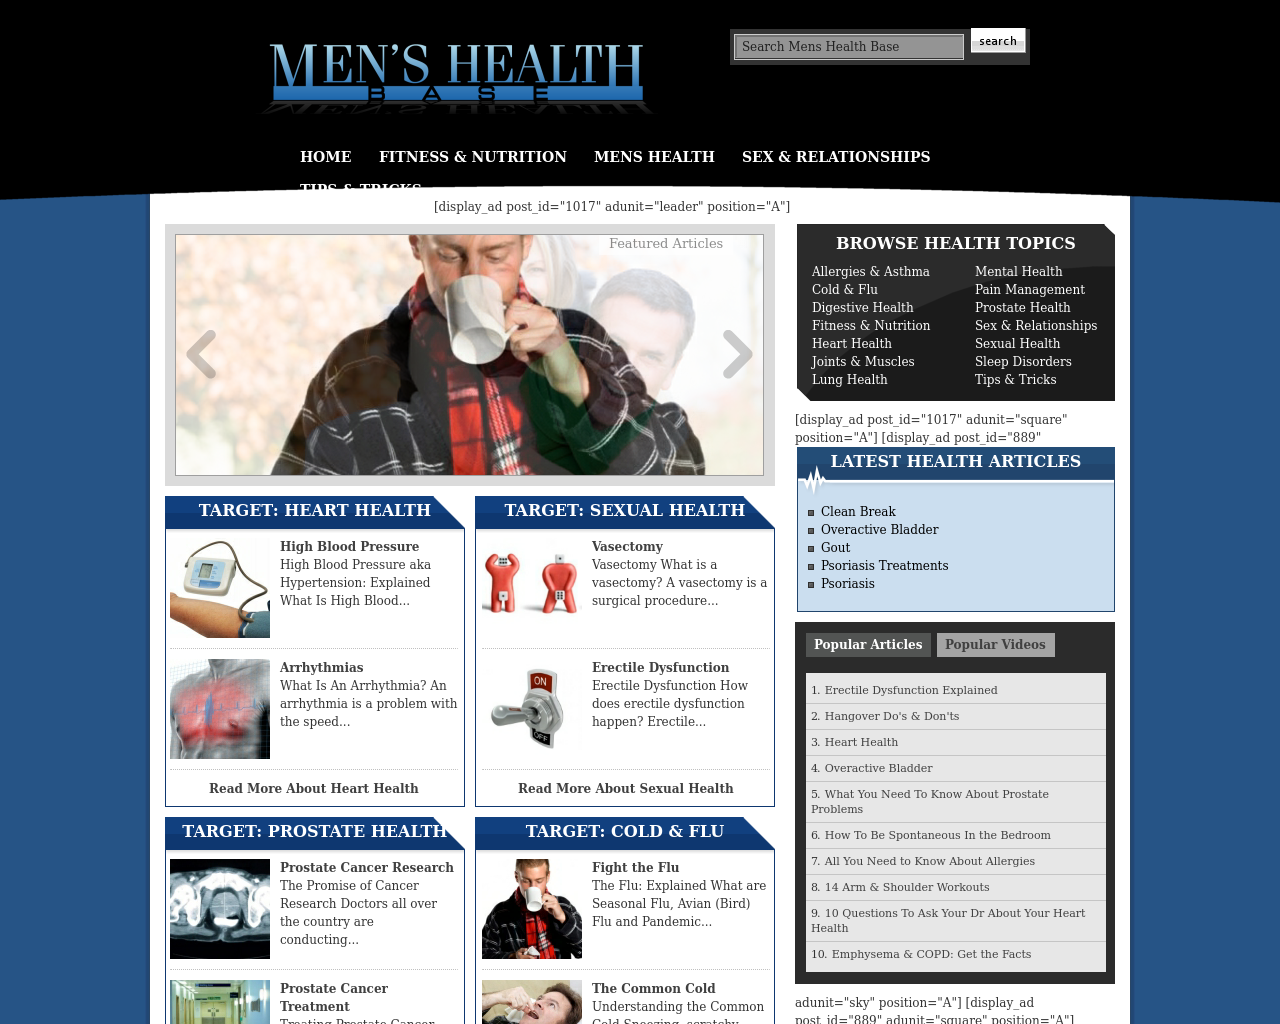 Men's-Health-Base-Advertising-Reviews-Pricing